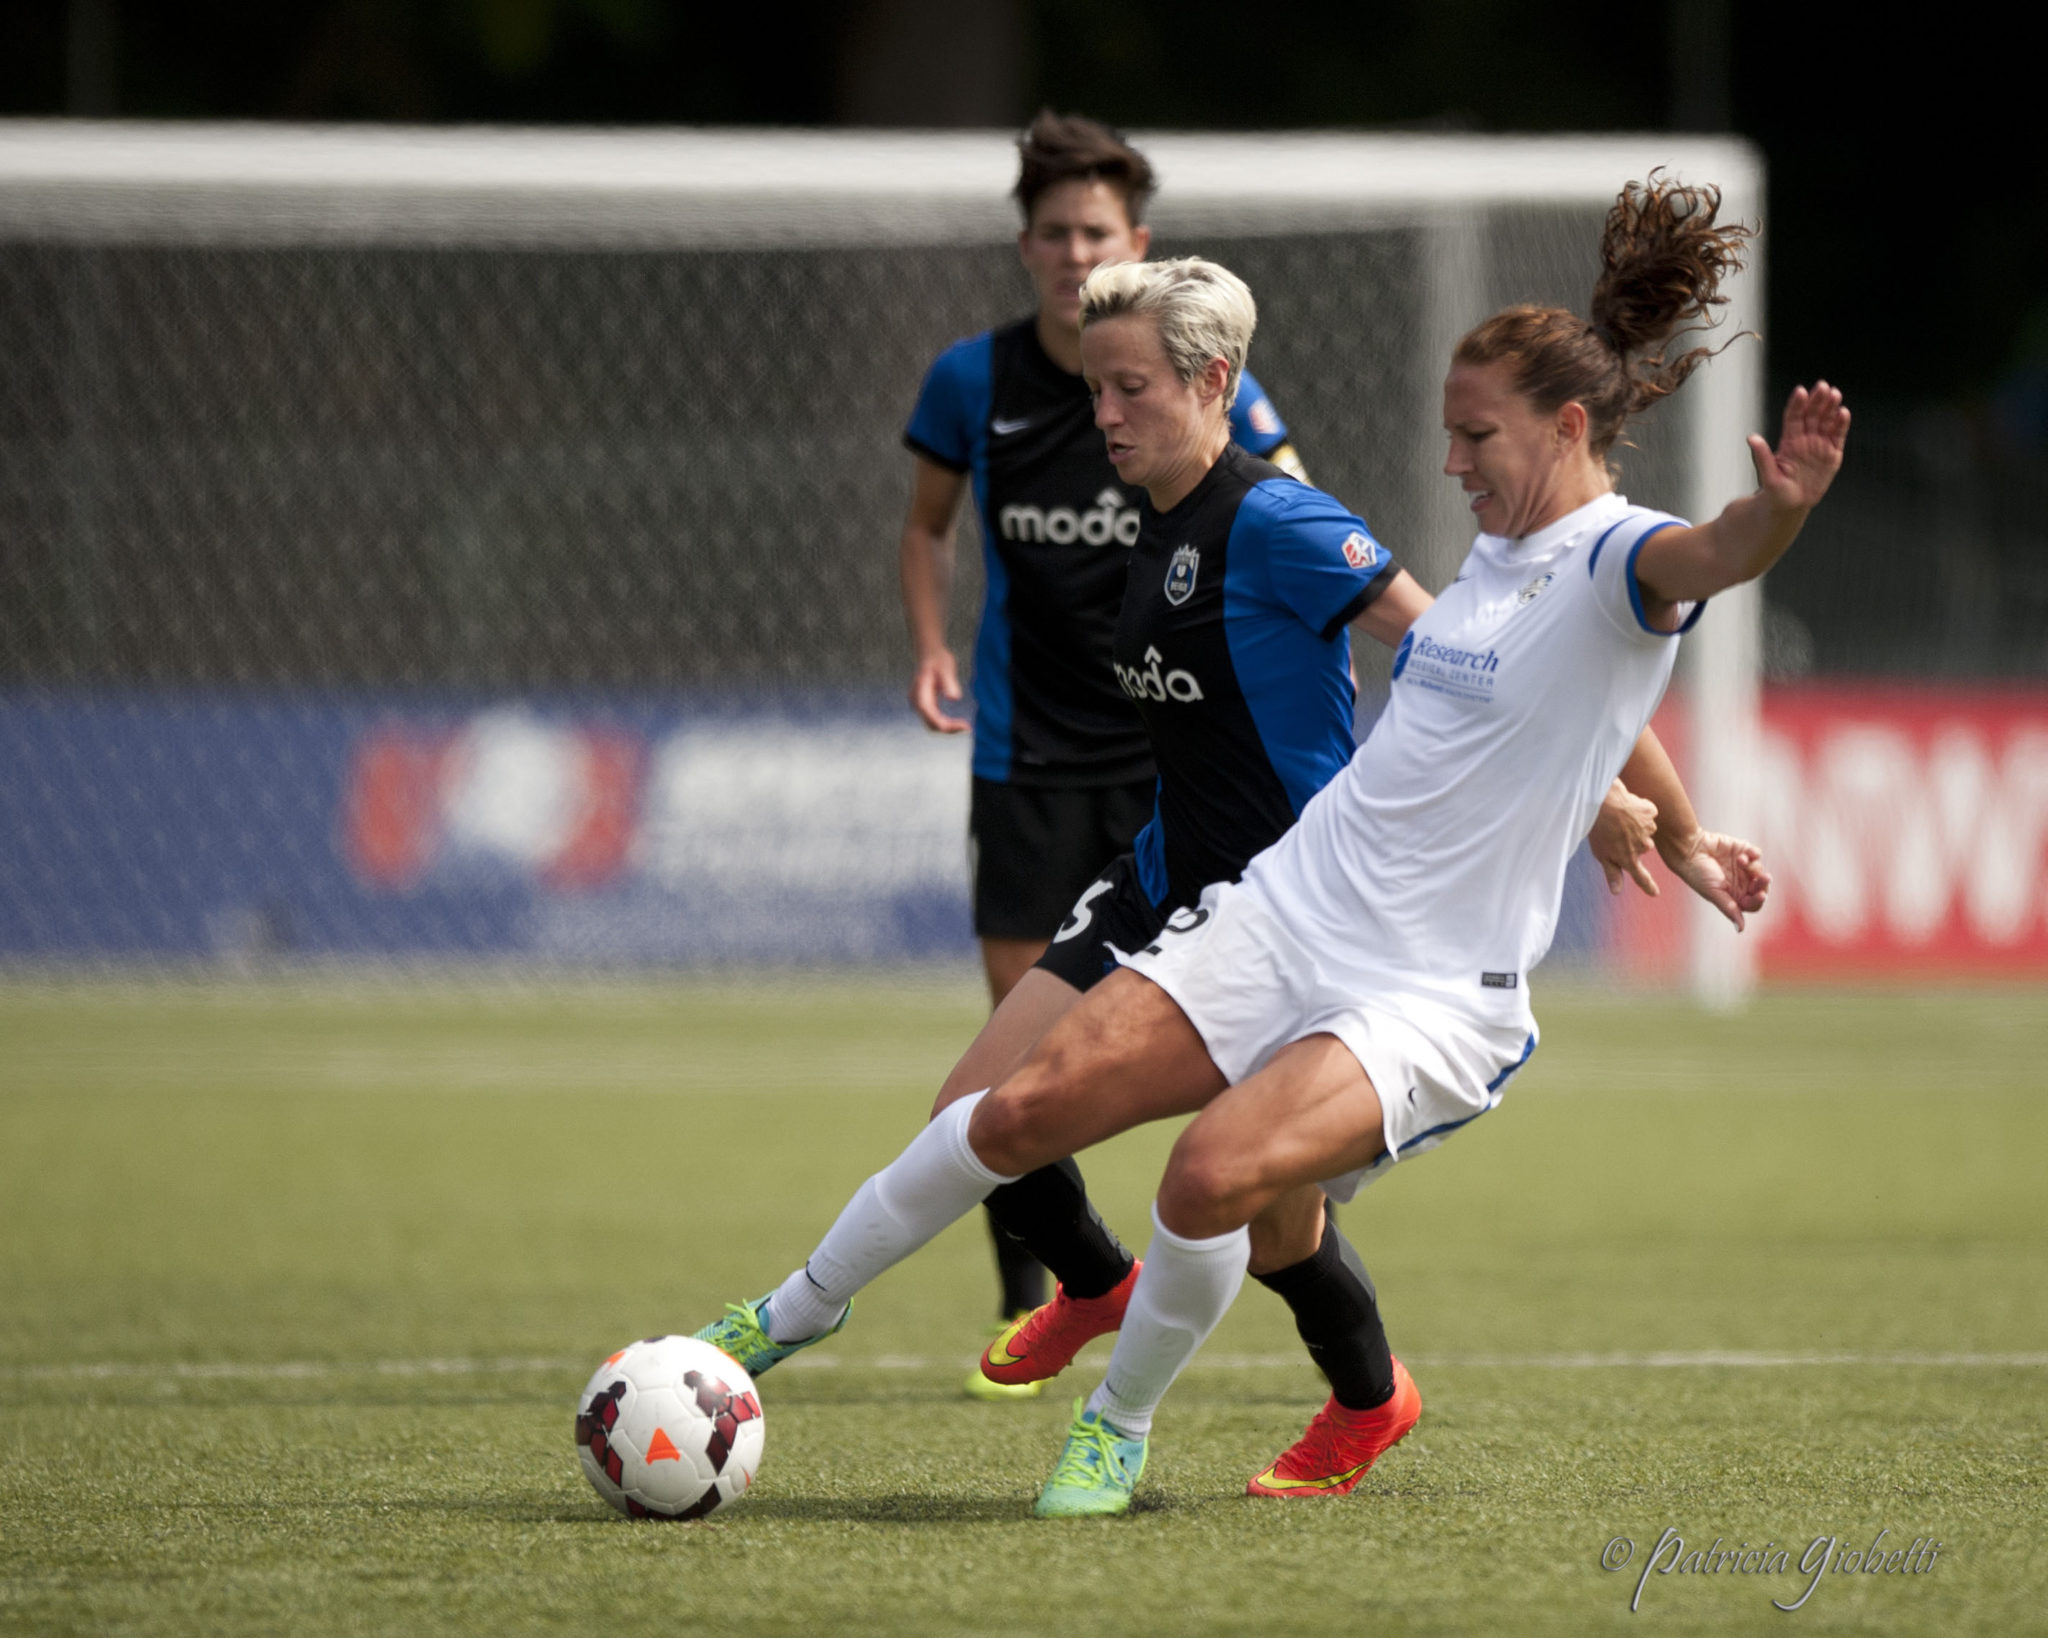 Lauren Holiday had two brilliant assists en route to an MVP honor. (Photo Copyright Patricia Giobetti for The Equalizer)